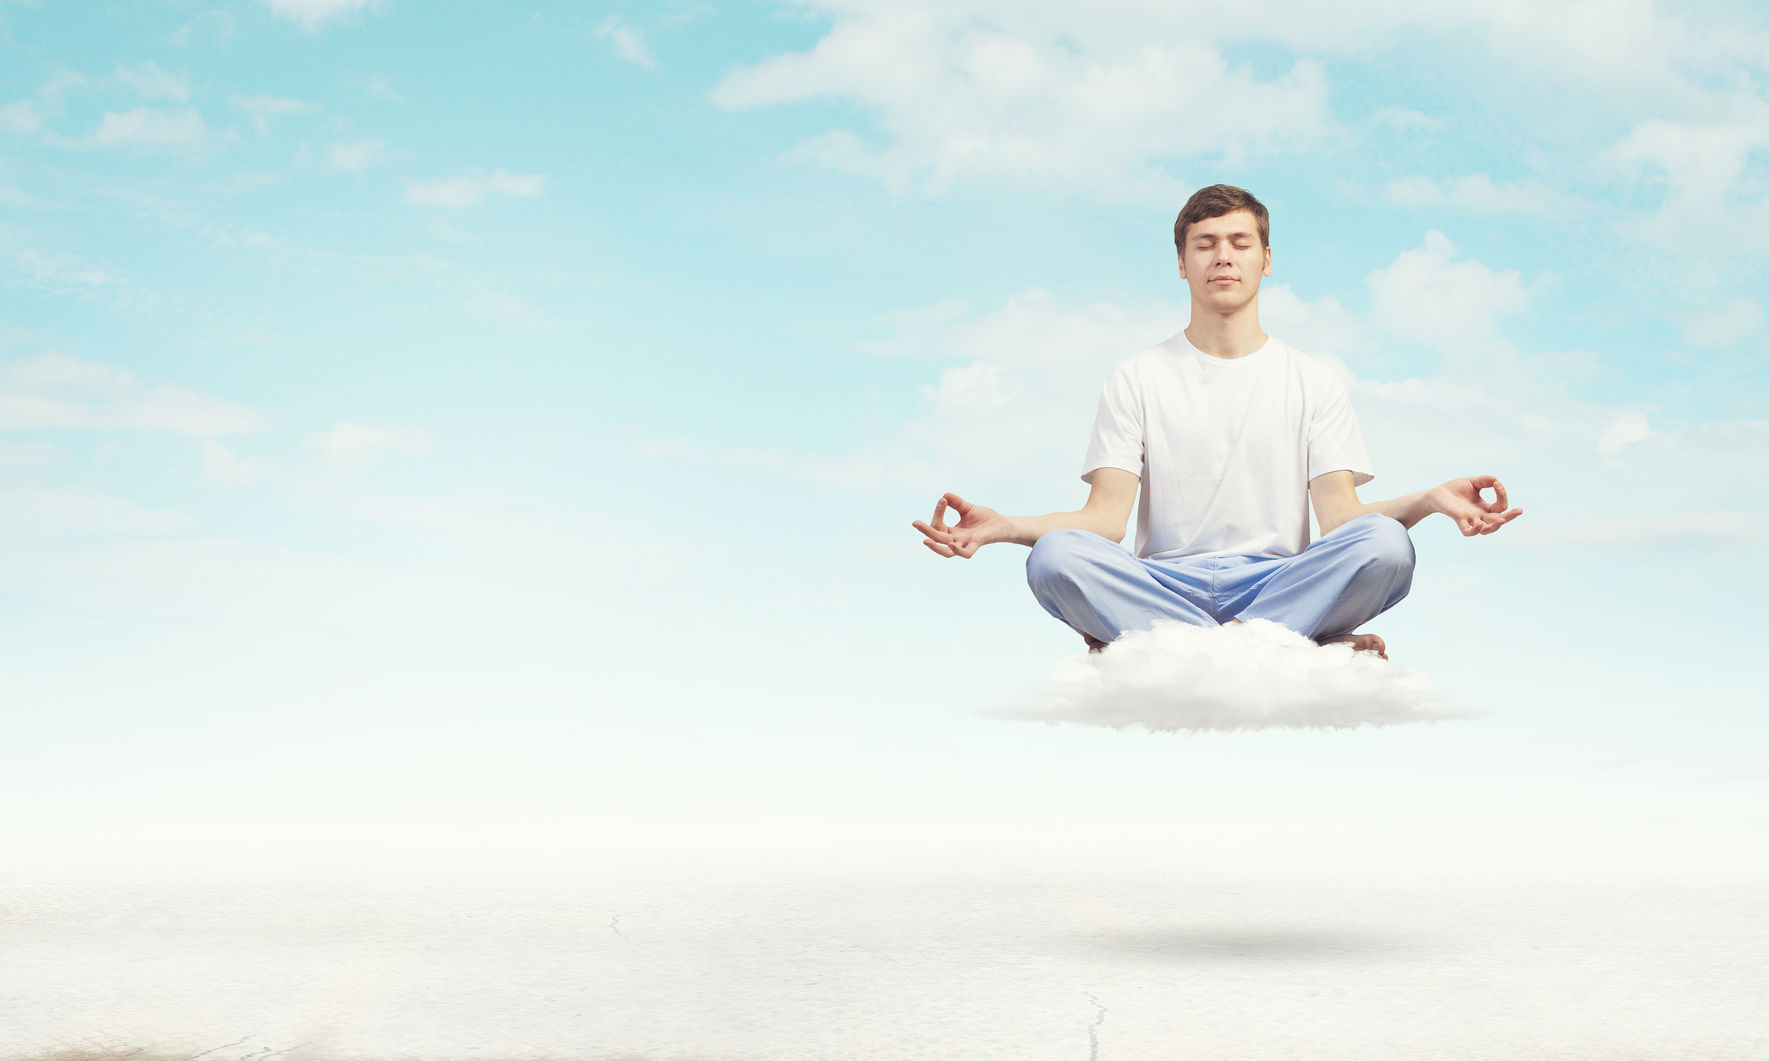 Young man meditating in the clouds.